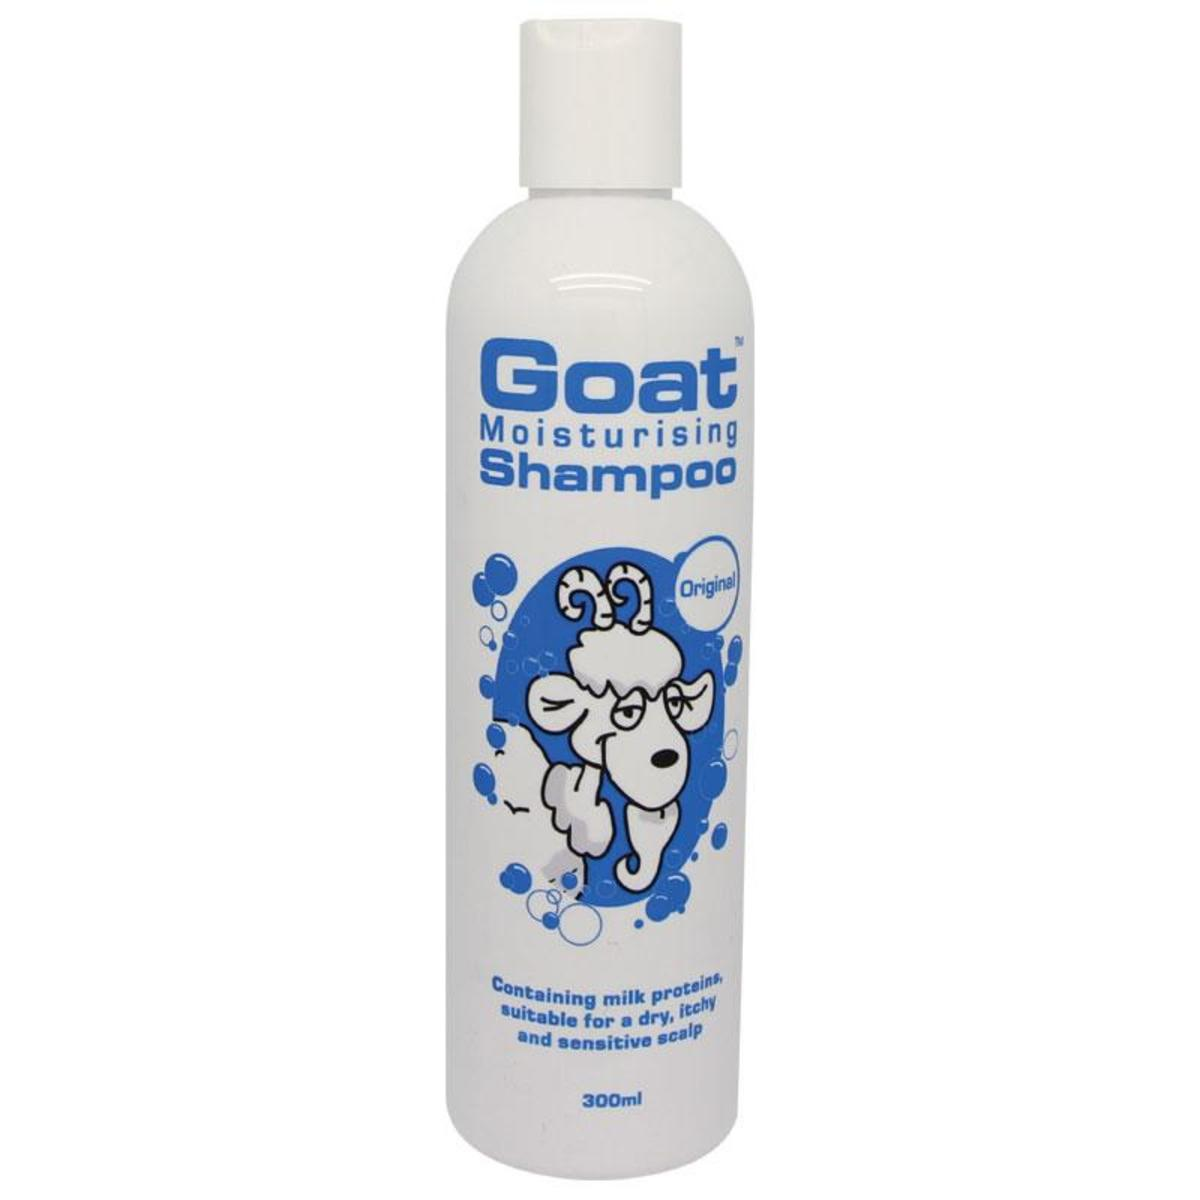 Goat Shampoo with original 300ml (Parallel Import)